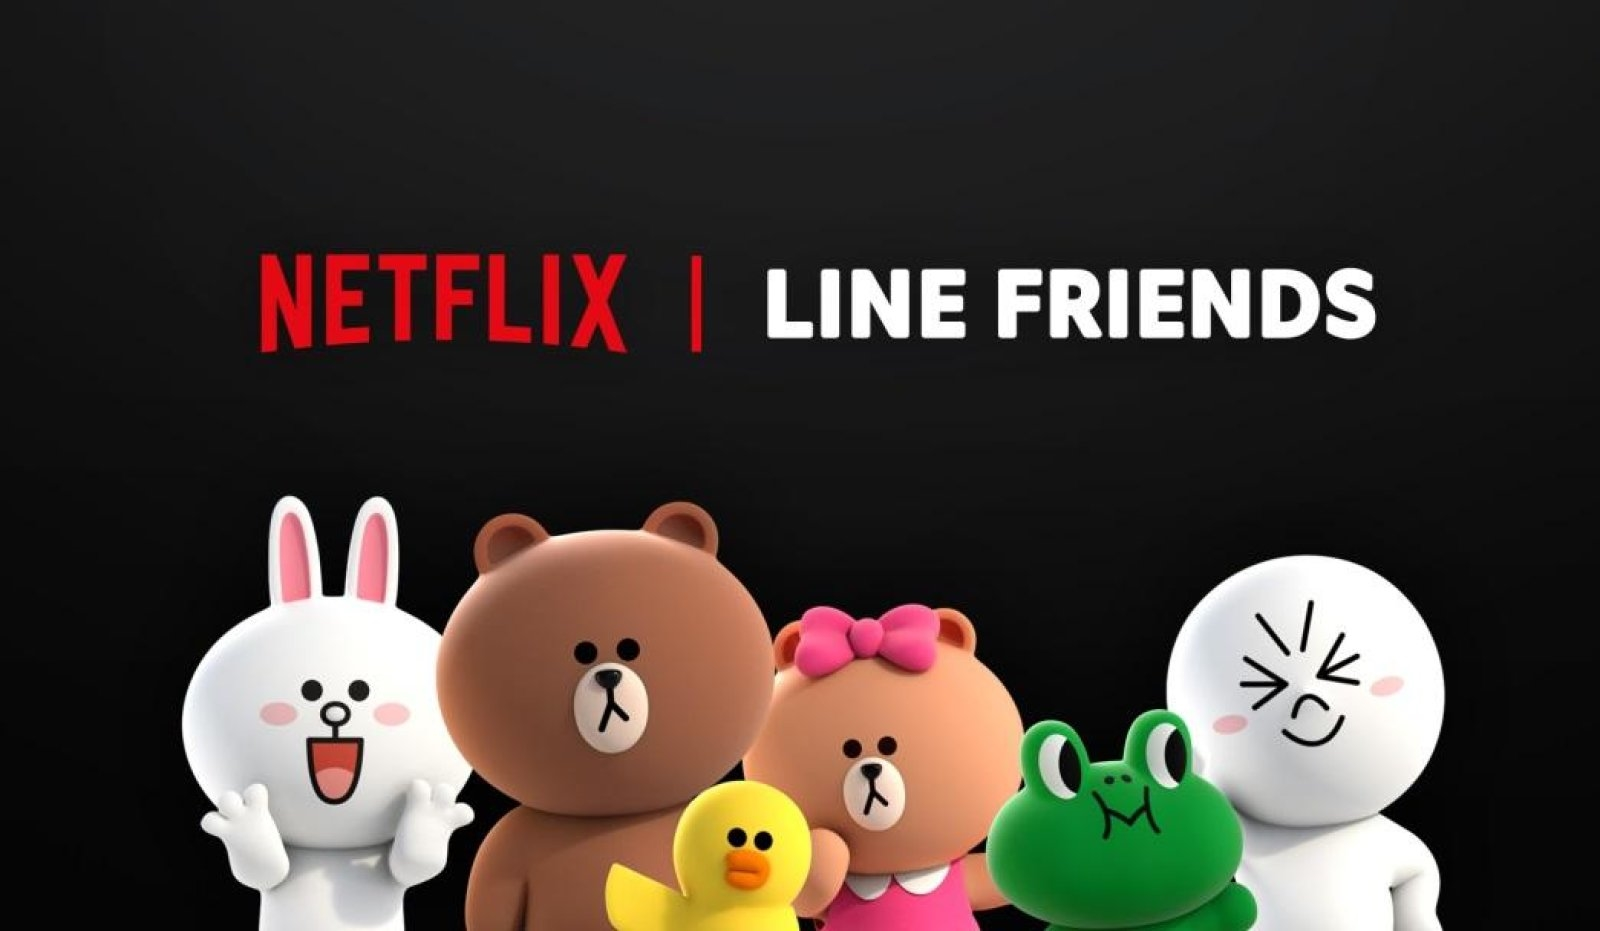 Netflix is giving Line's cute mascots their own animated series | DeviceDaily.com